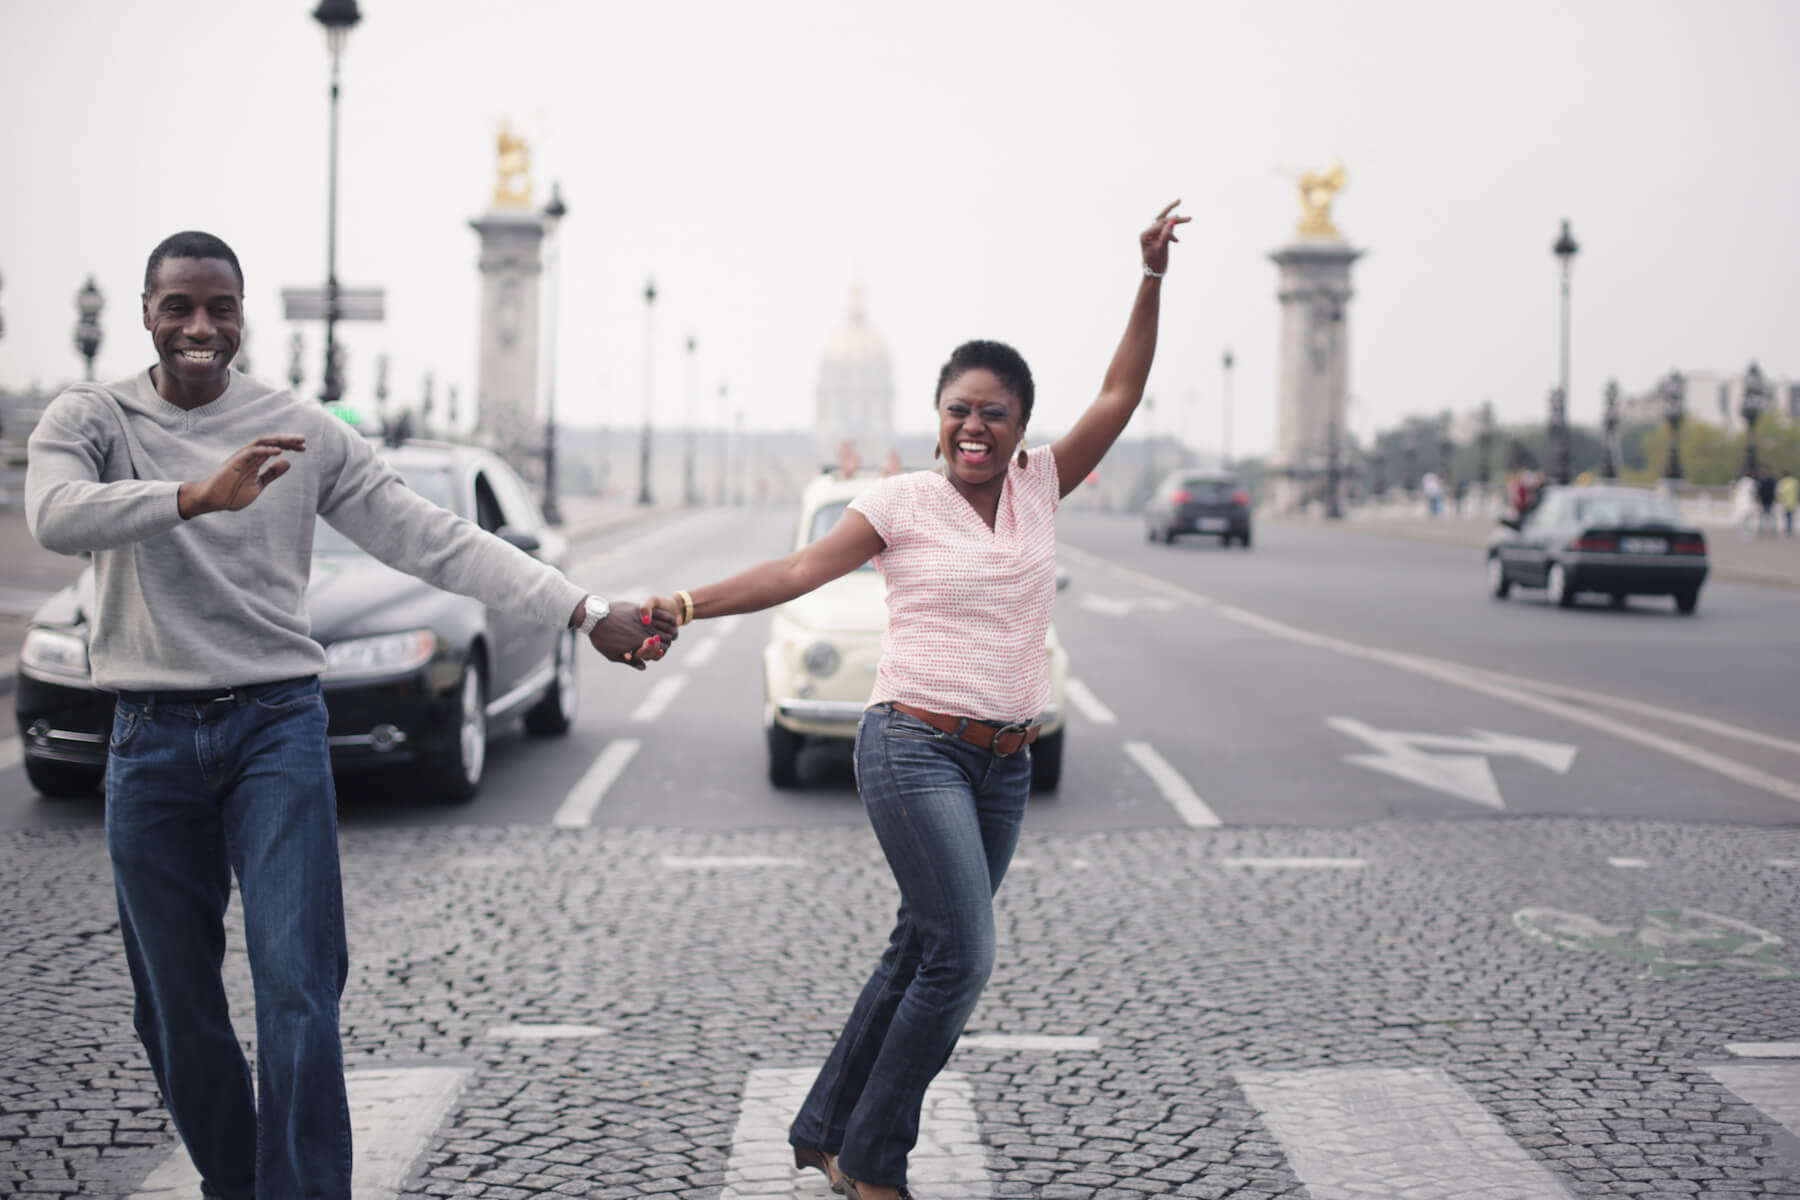 Couple dancing together in an intersection in Paris, France